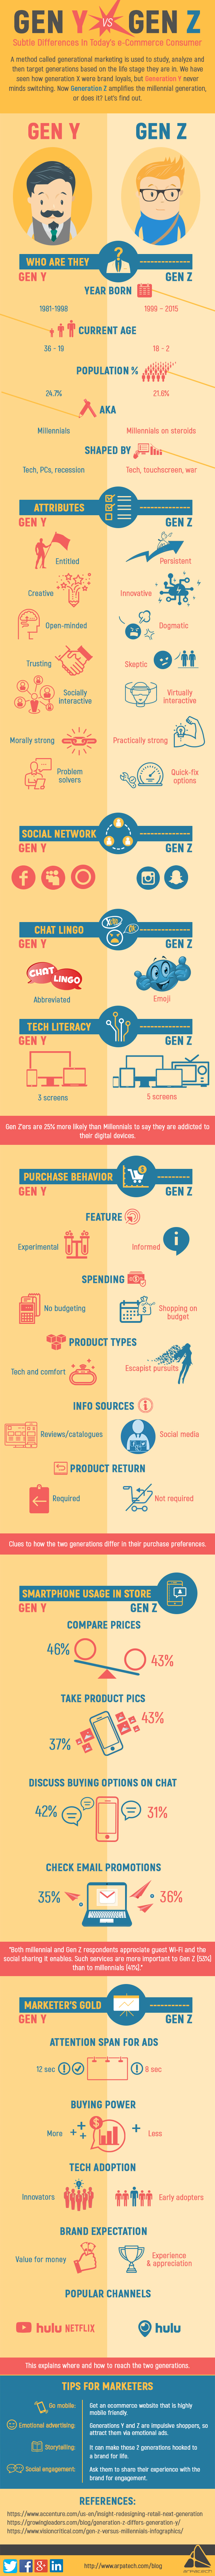 Subtle Differences Between Today's e-Commerce Consumers